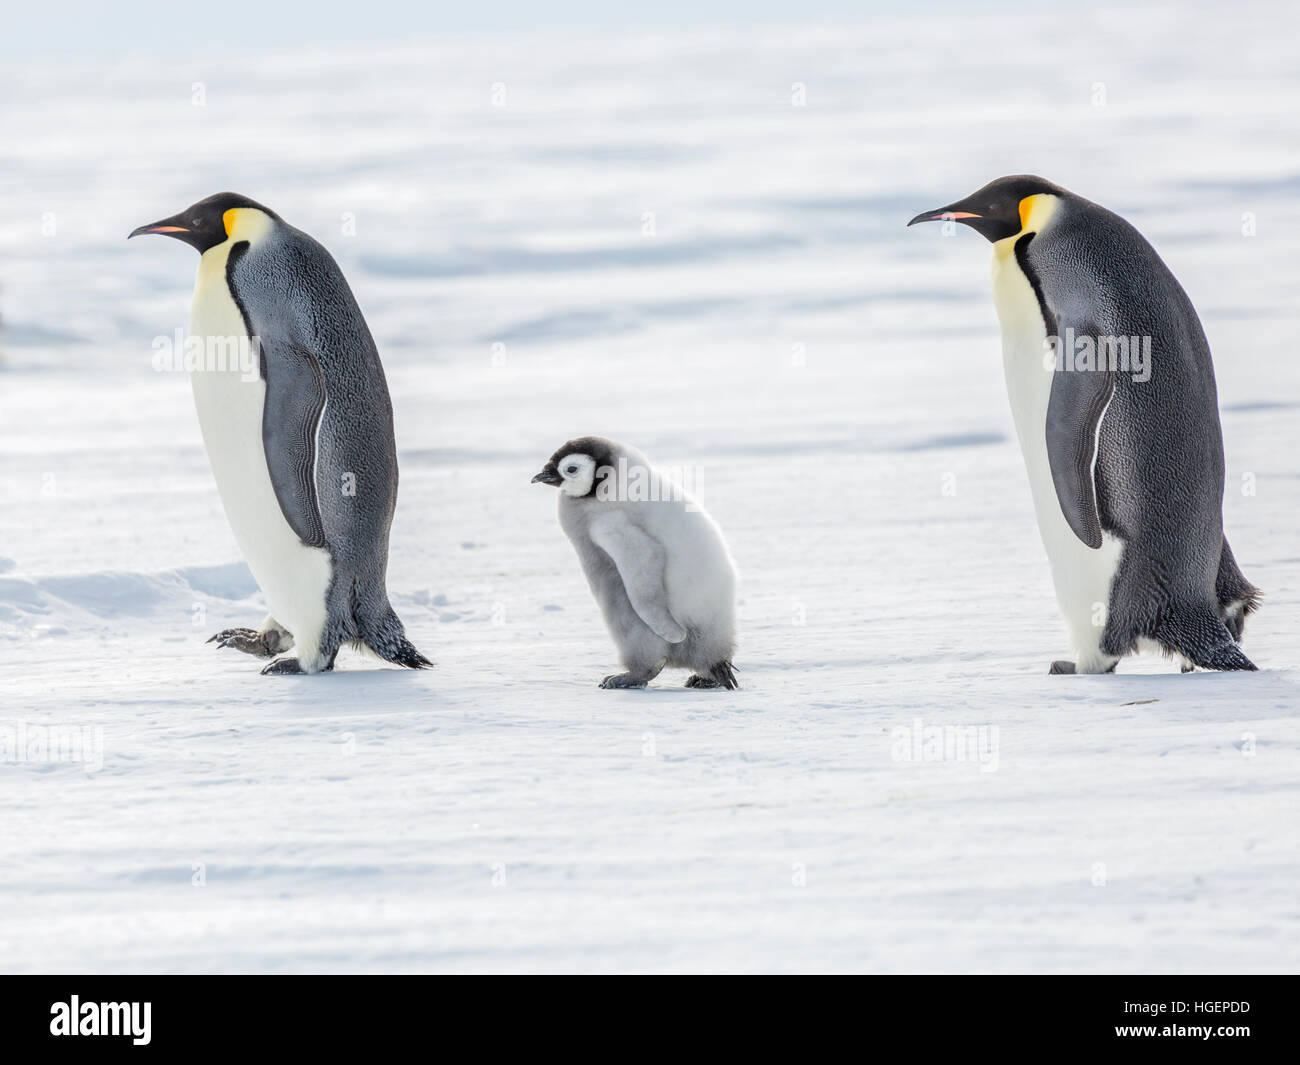 An Emperor Penguin chick on a walk between two adults - Stock Image